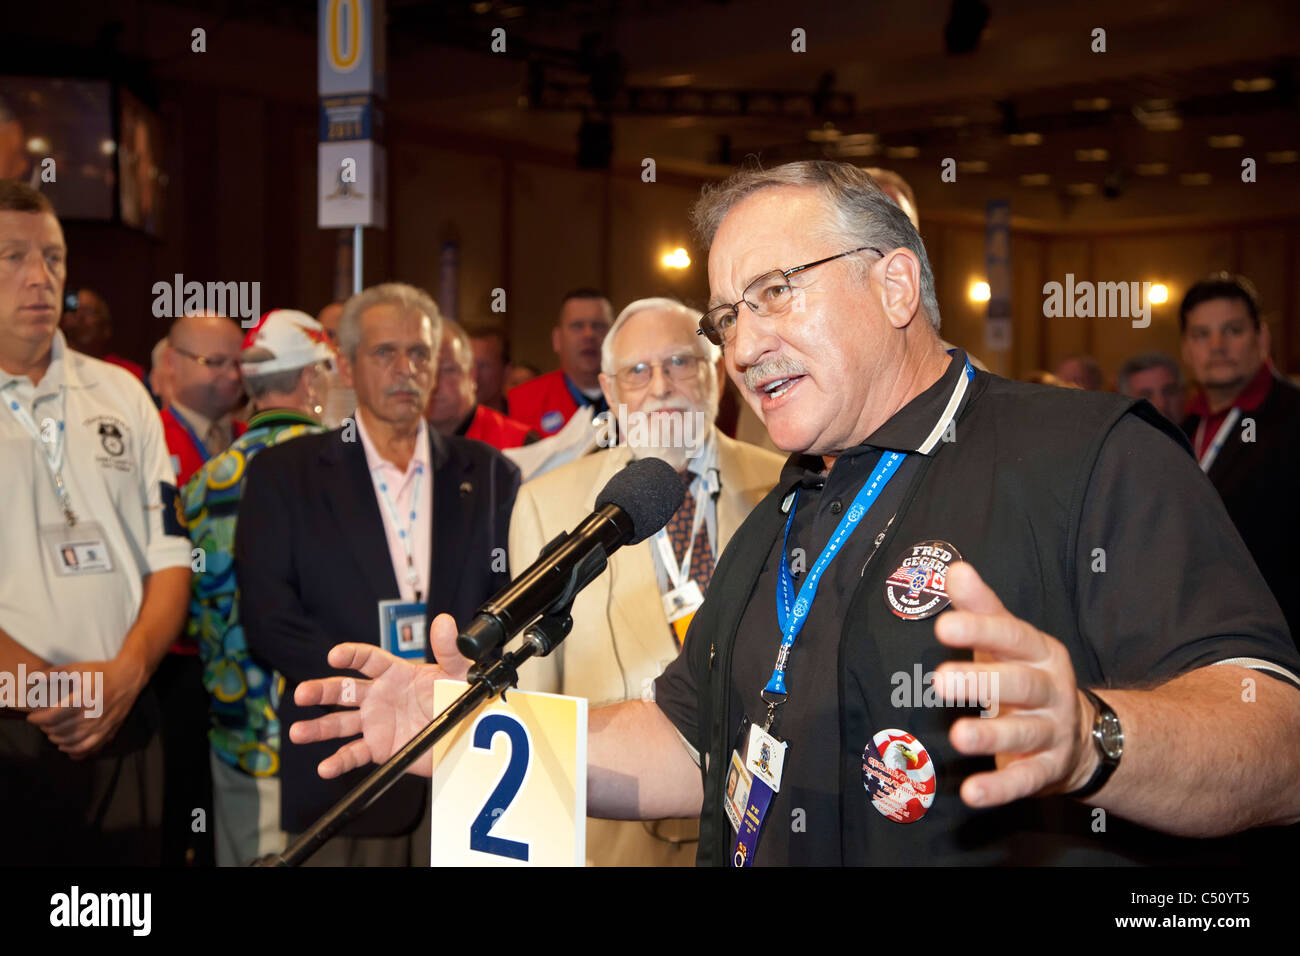 Fred Gegare Accepts Nomination as Candidate for Teamsters President - Stock Image